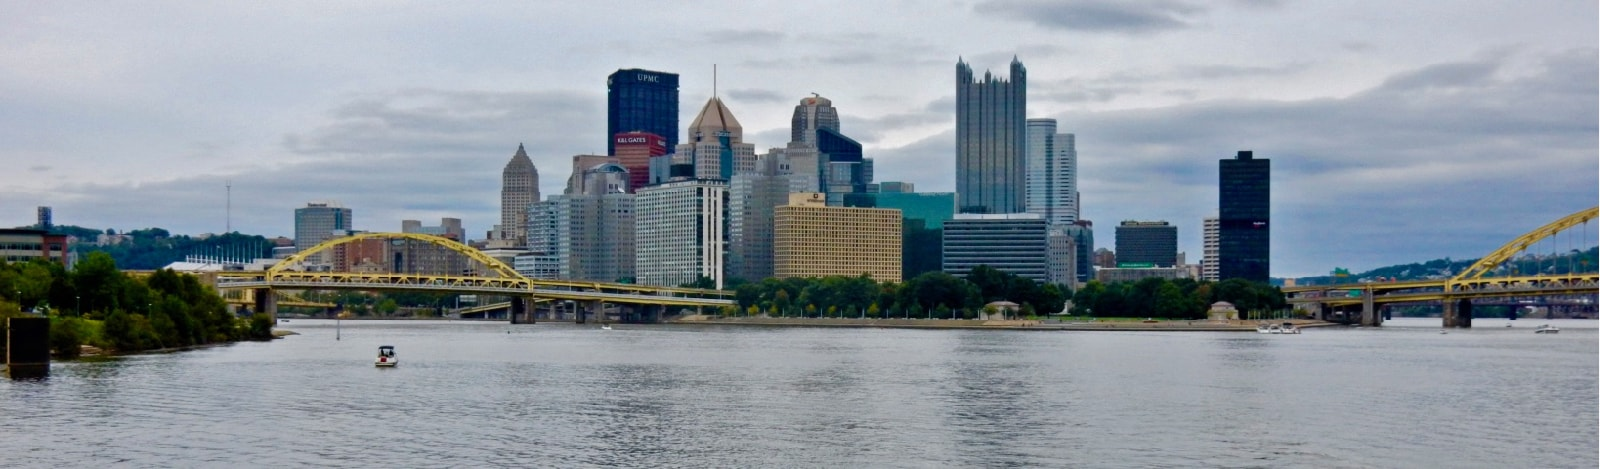 Downtown Pittsburgh from the River